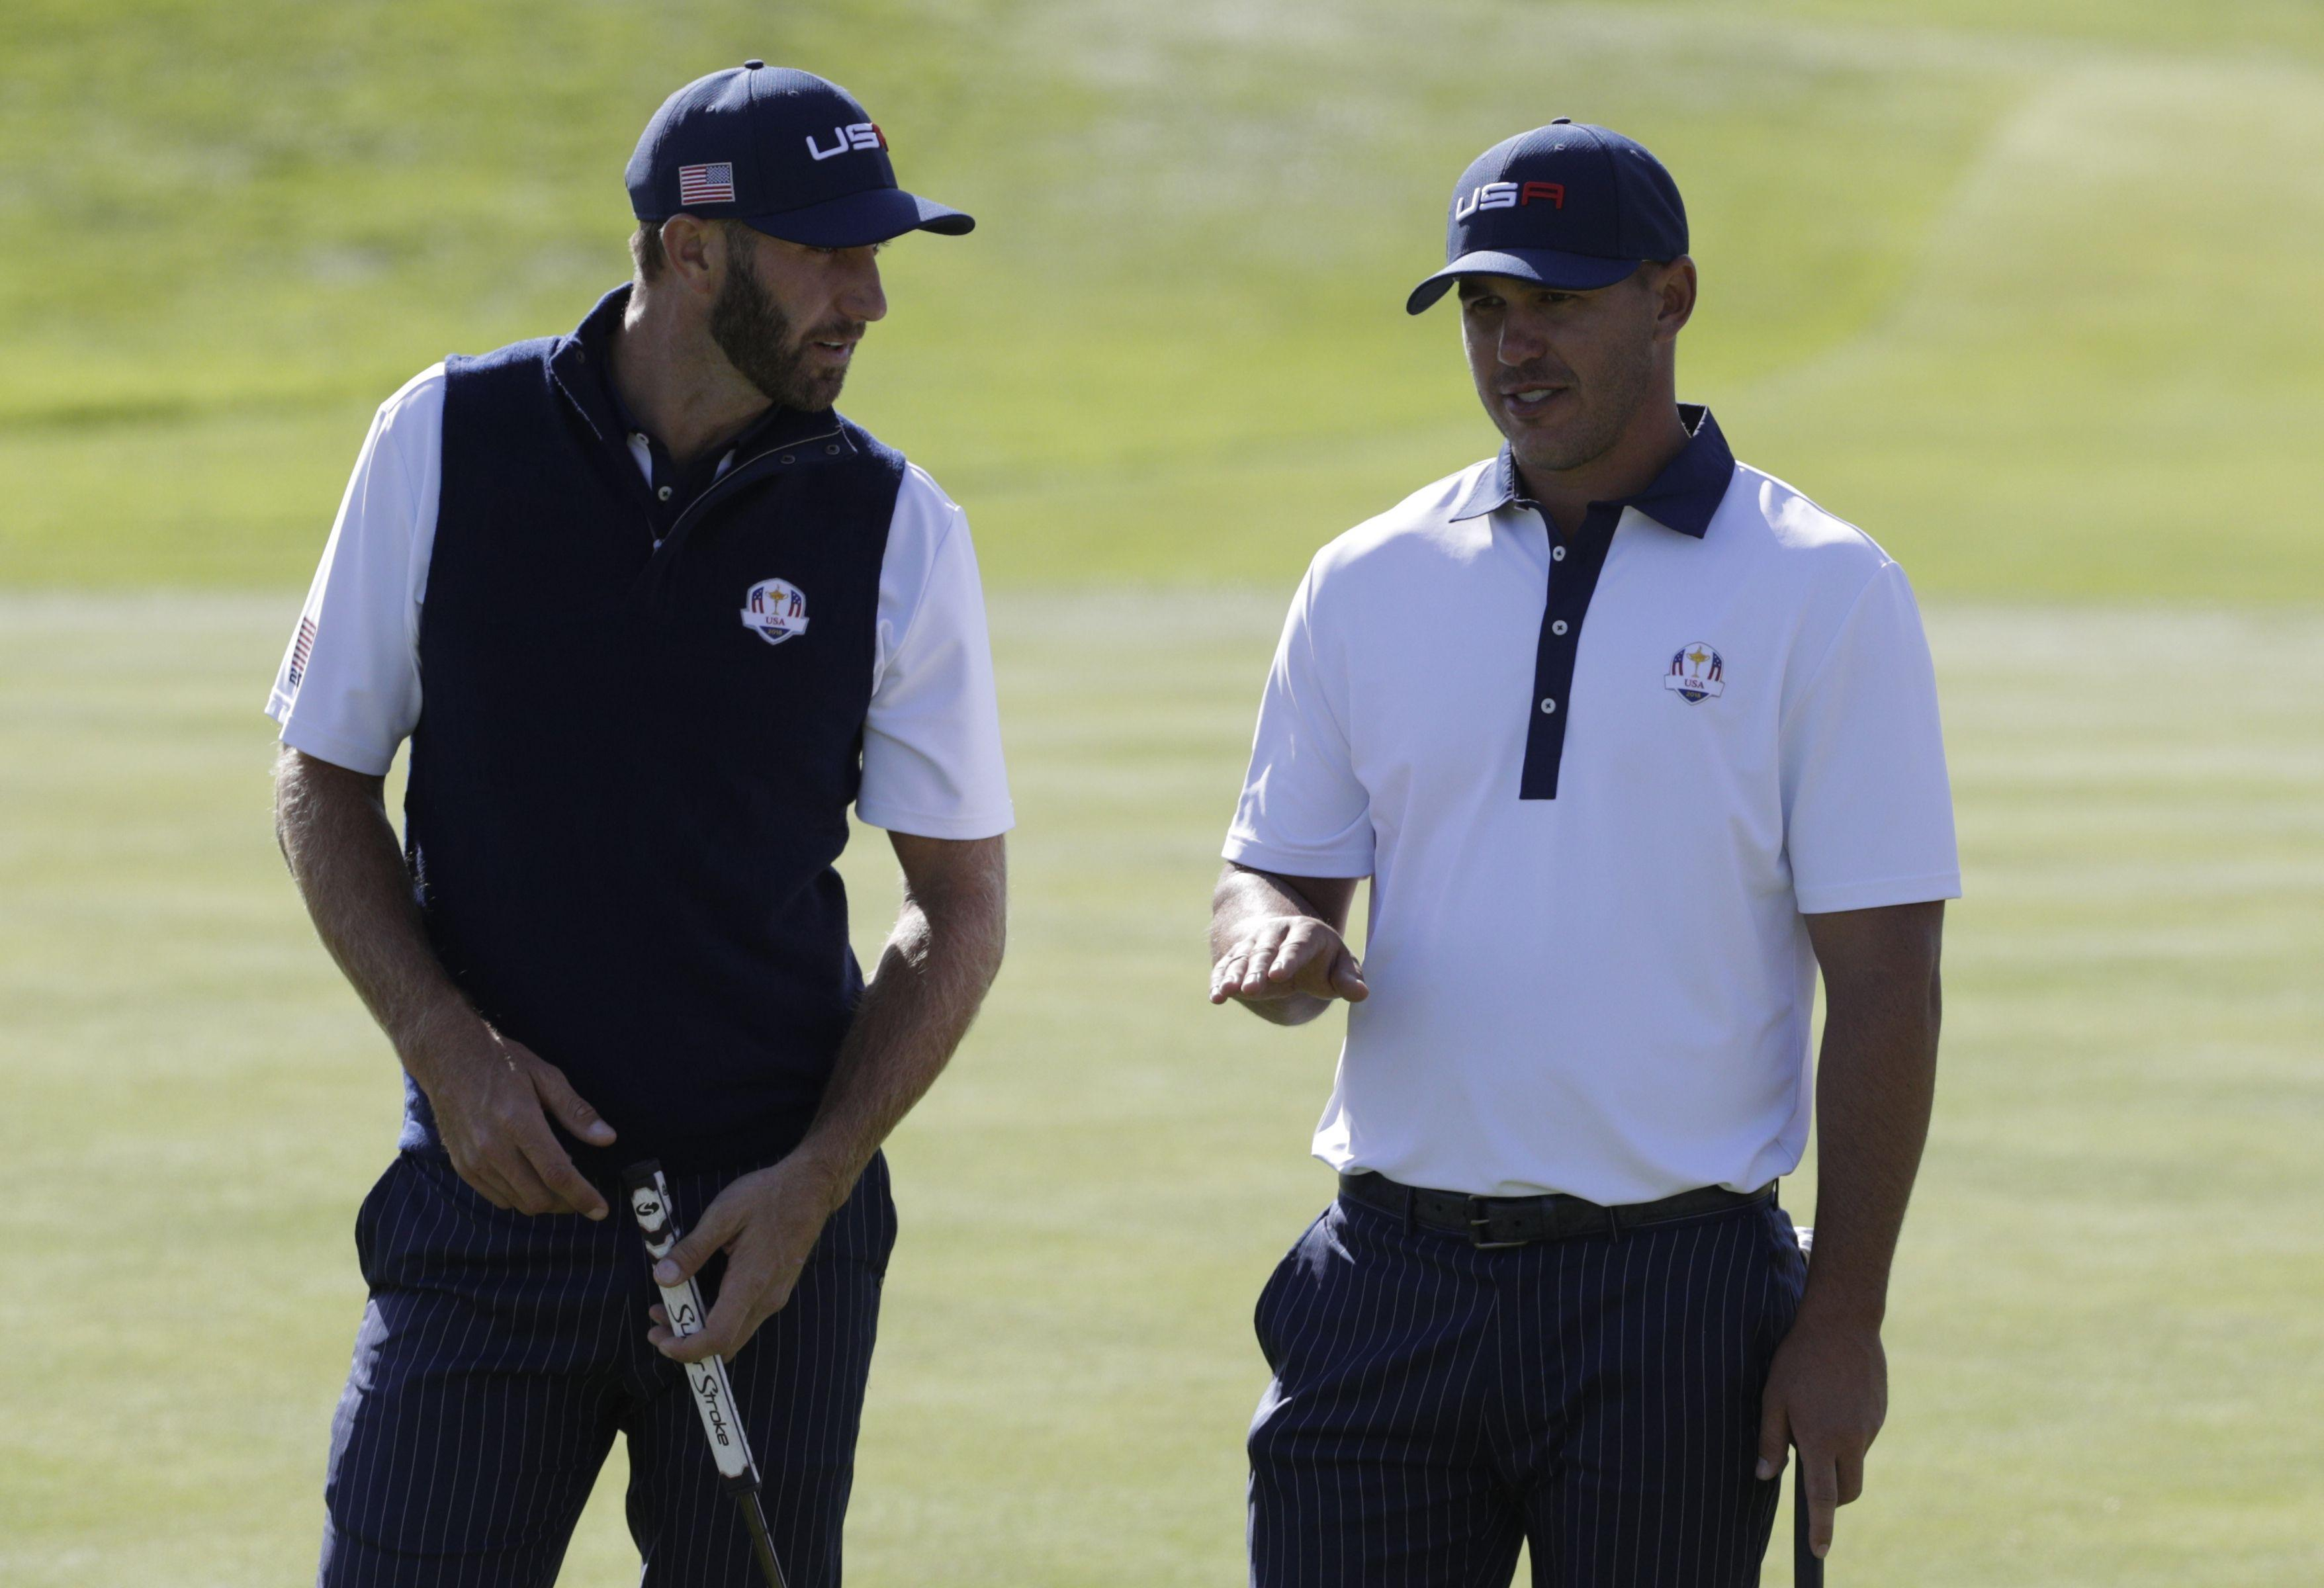 Dustin Johnson and Brooks Koepka became embroiled in a bitter row which tore the USA team apart